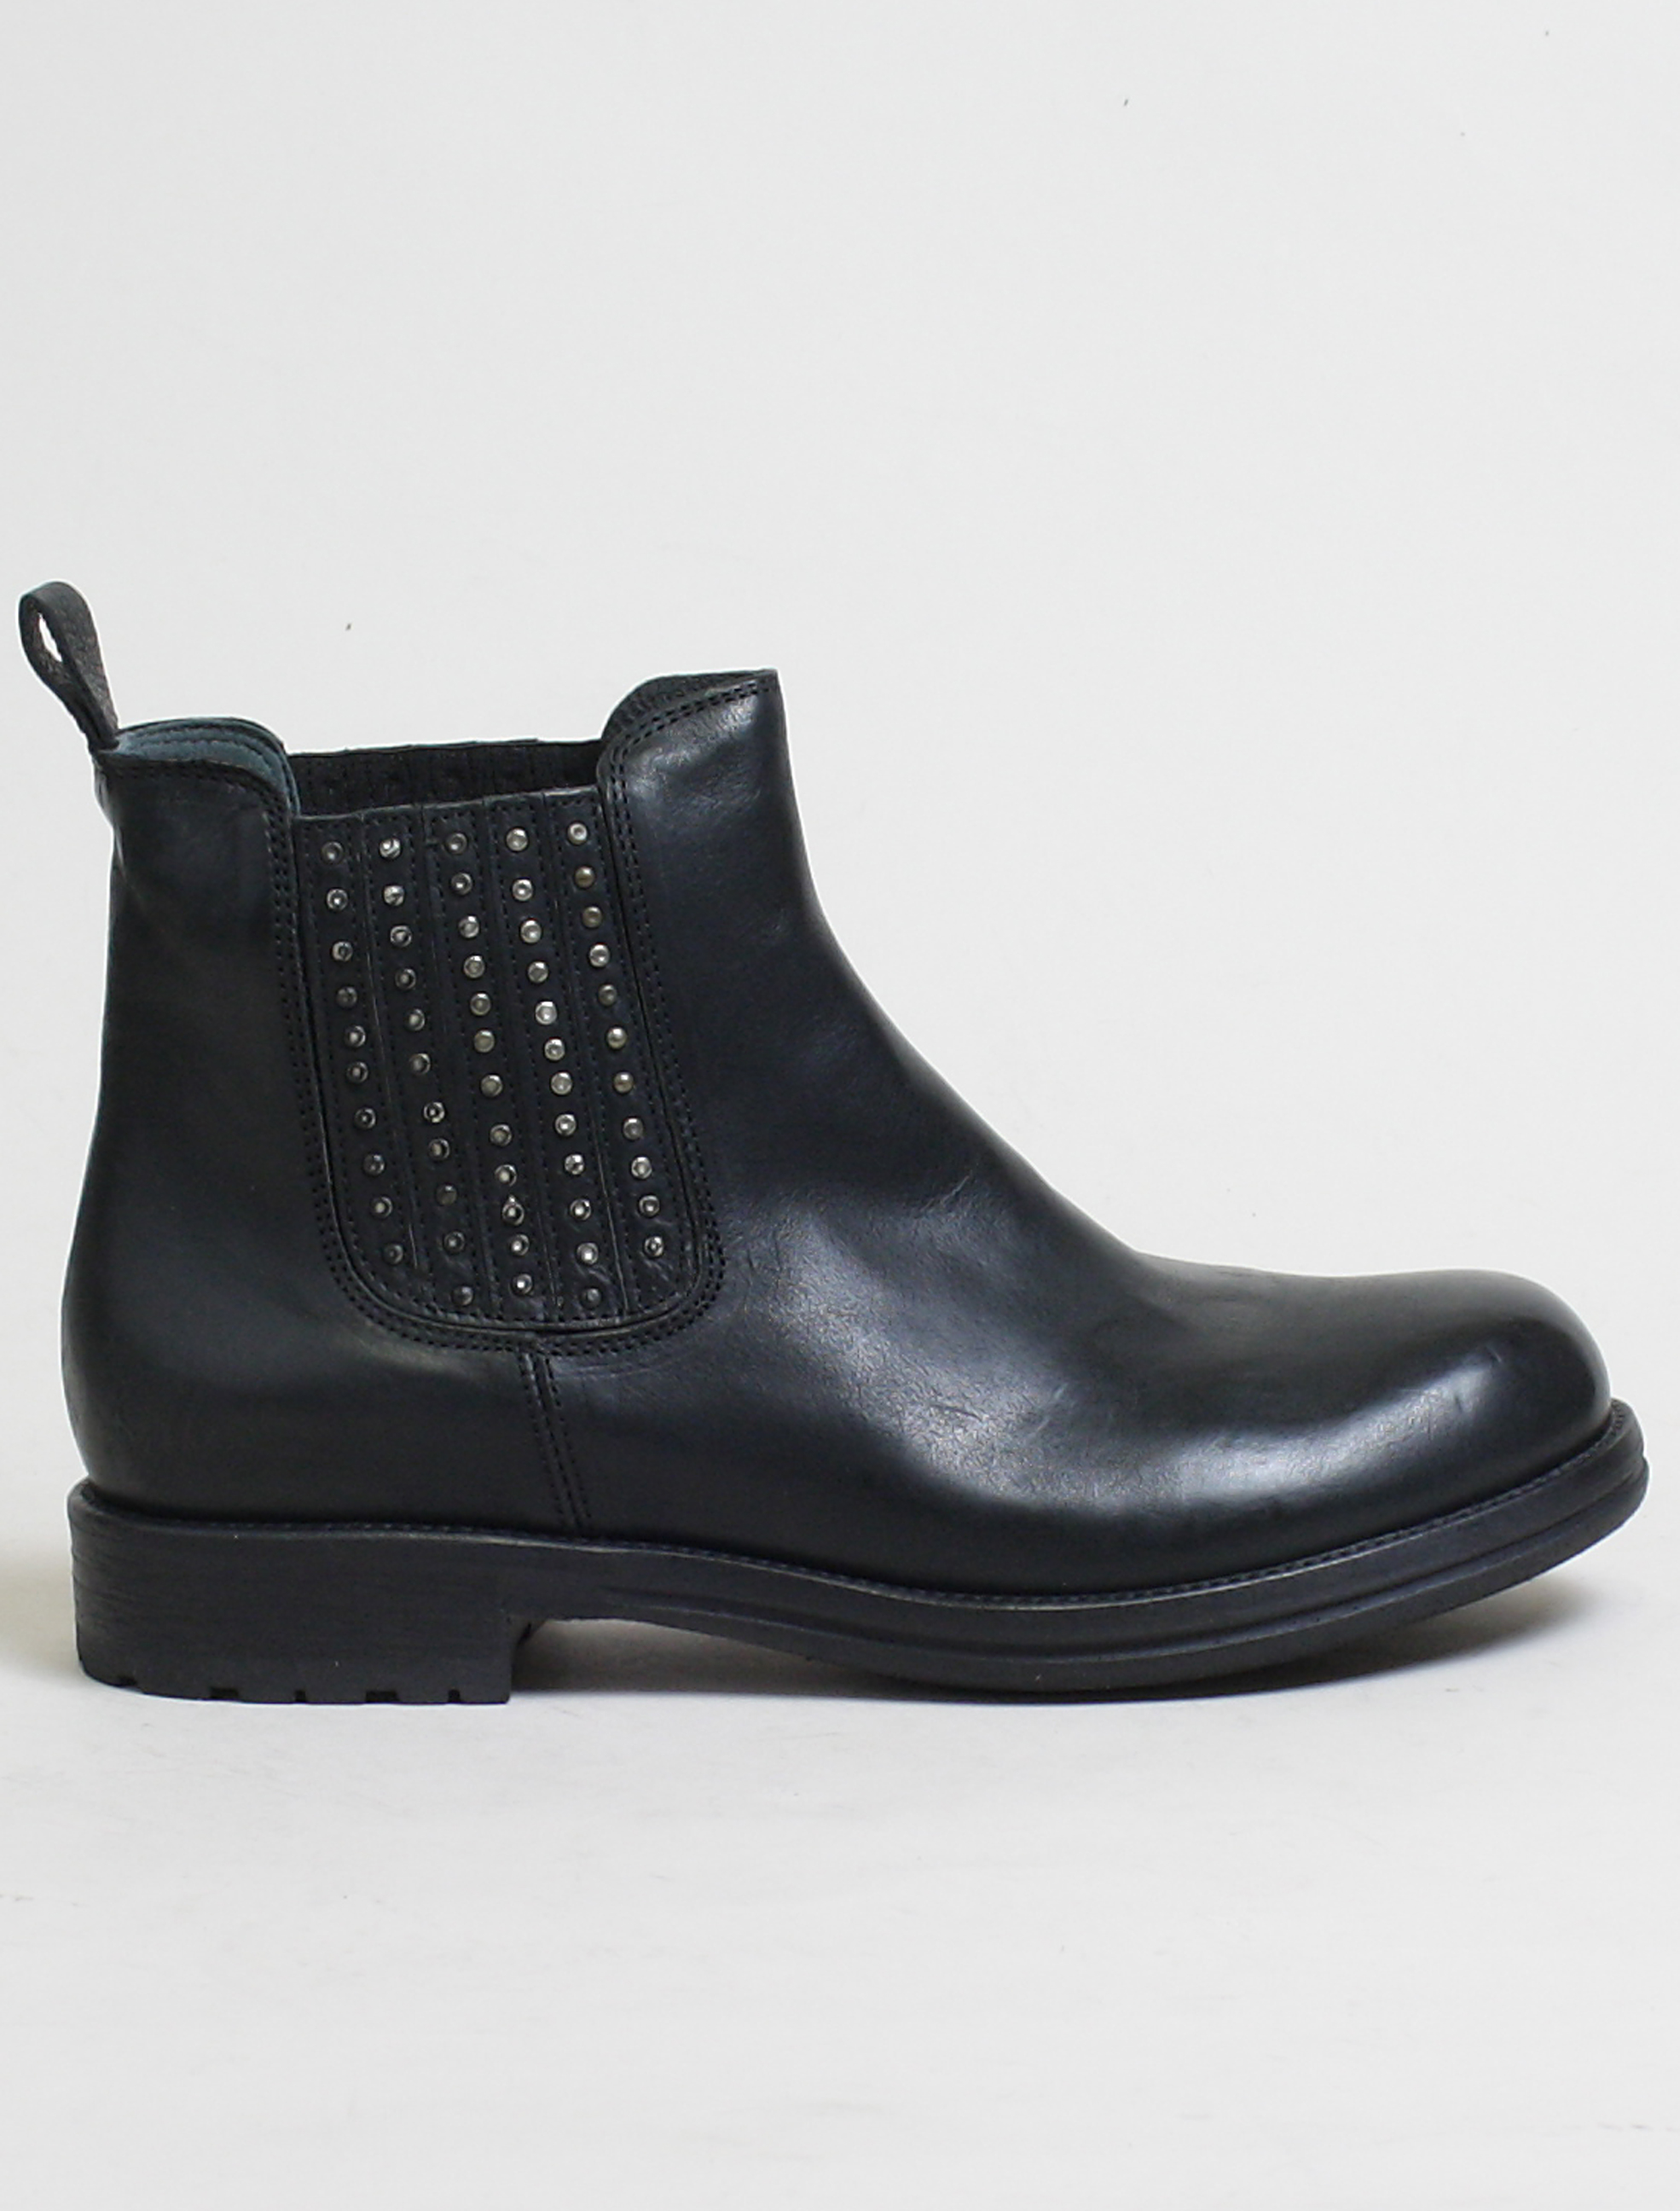 Fru.it 4758 stivaletto borchie nero